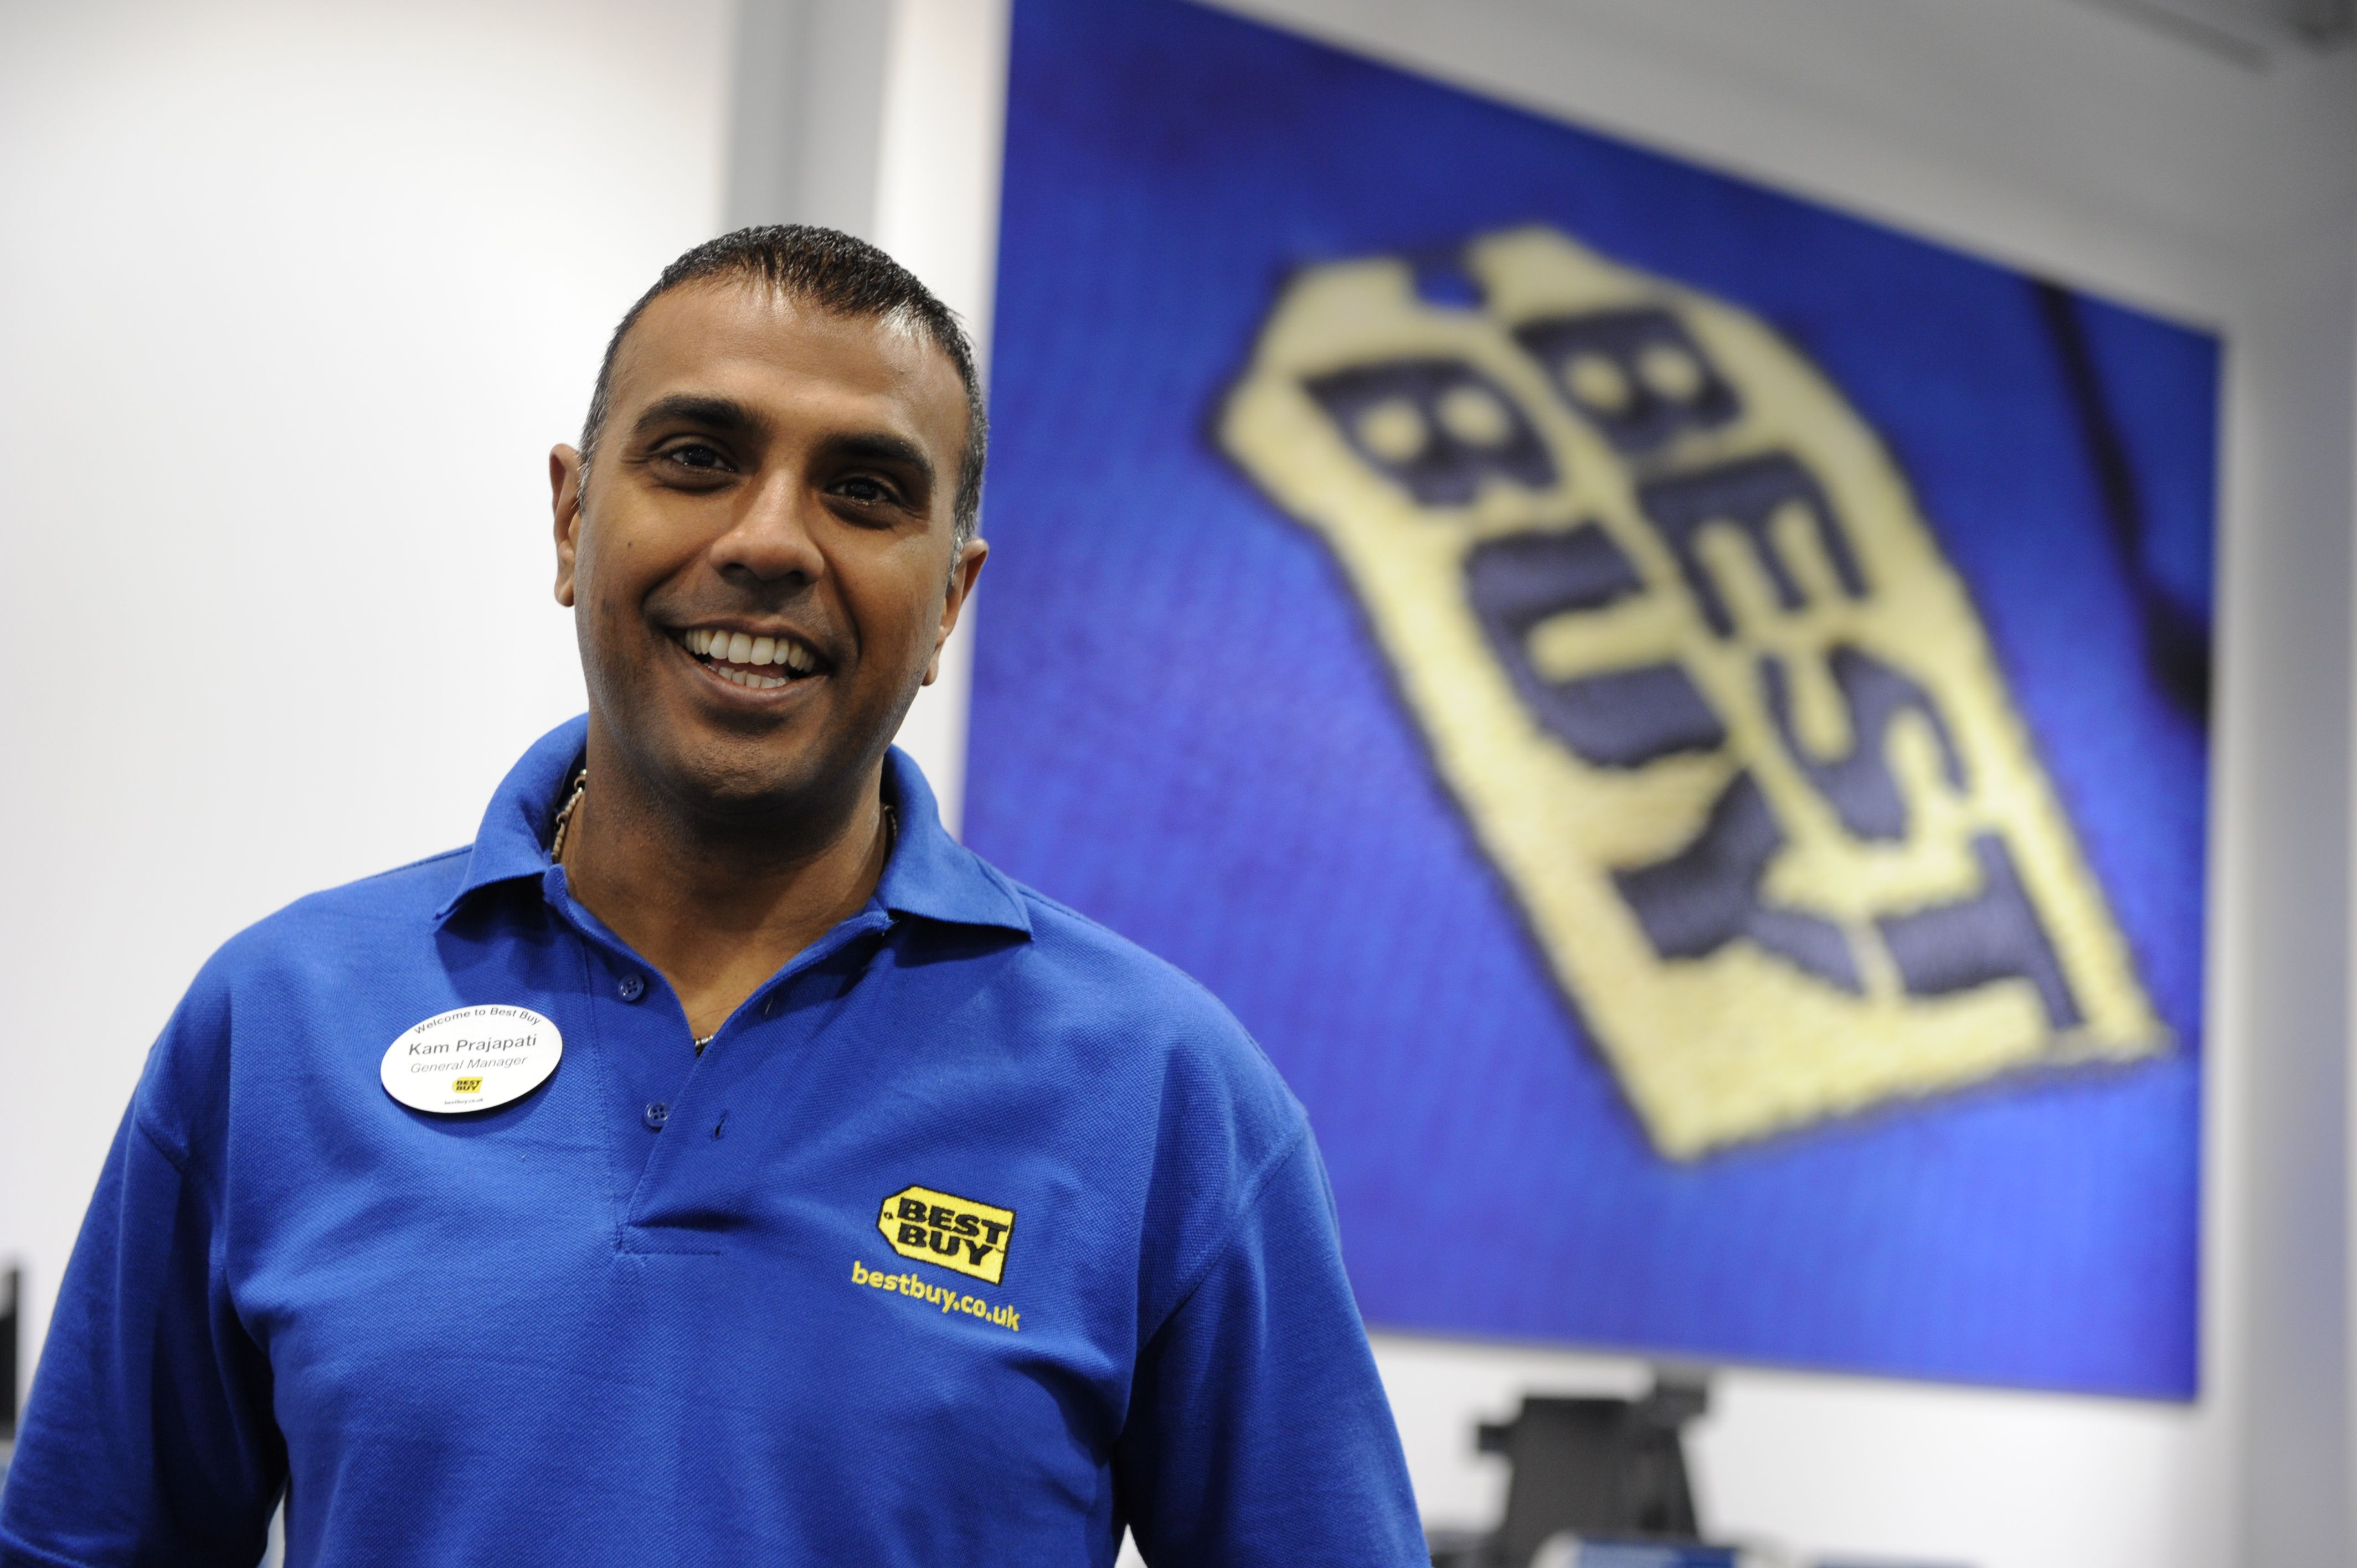 Best Buy store and employee